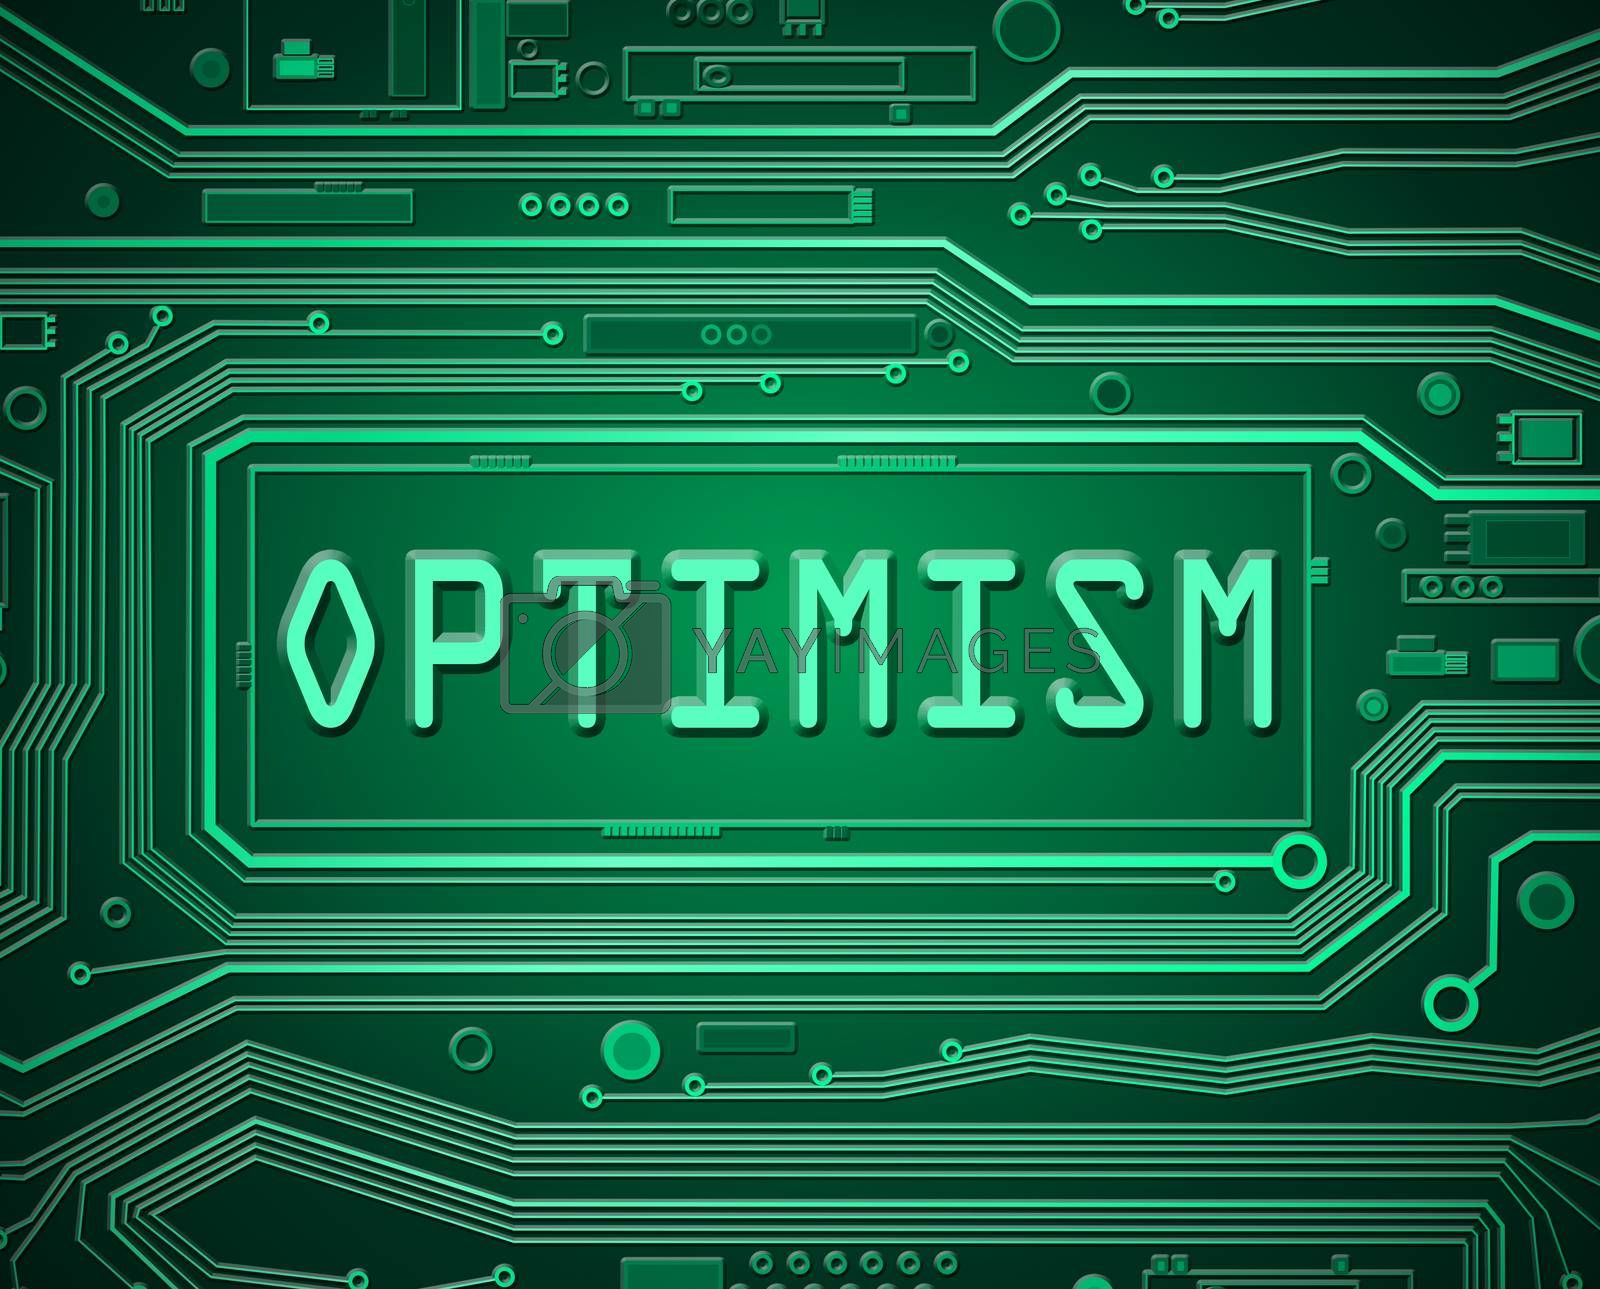 Abstract style illustration depicting printed circuit board components with an optimism concept.